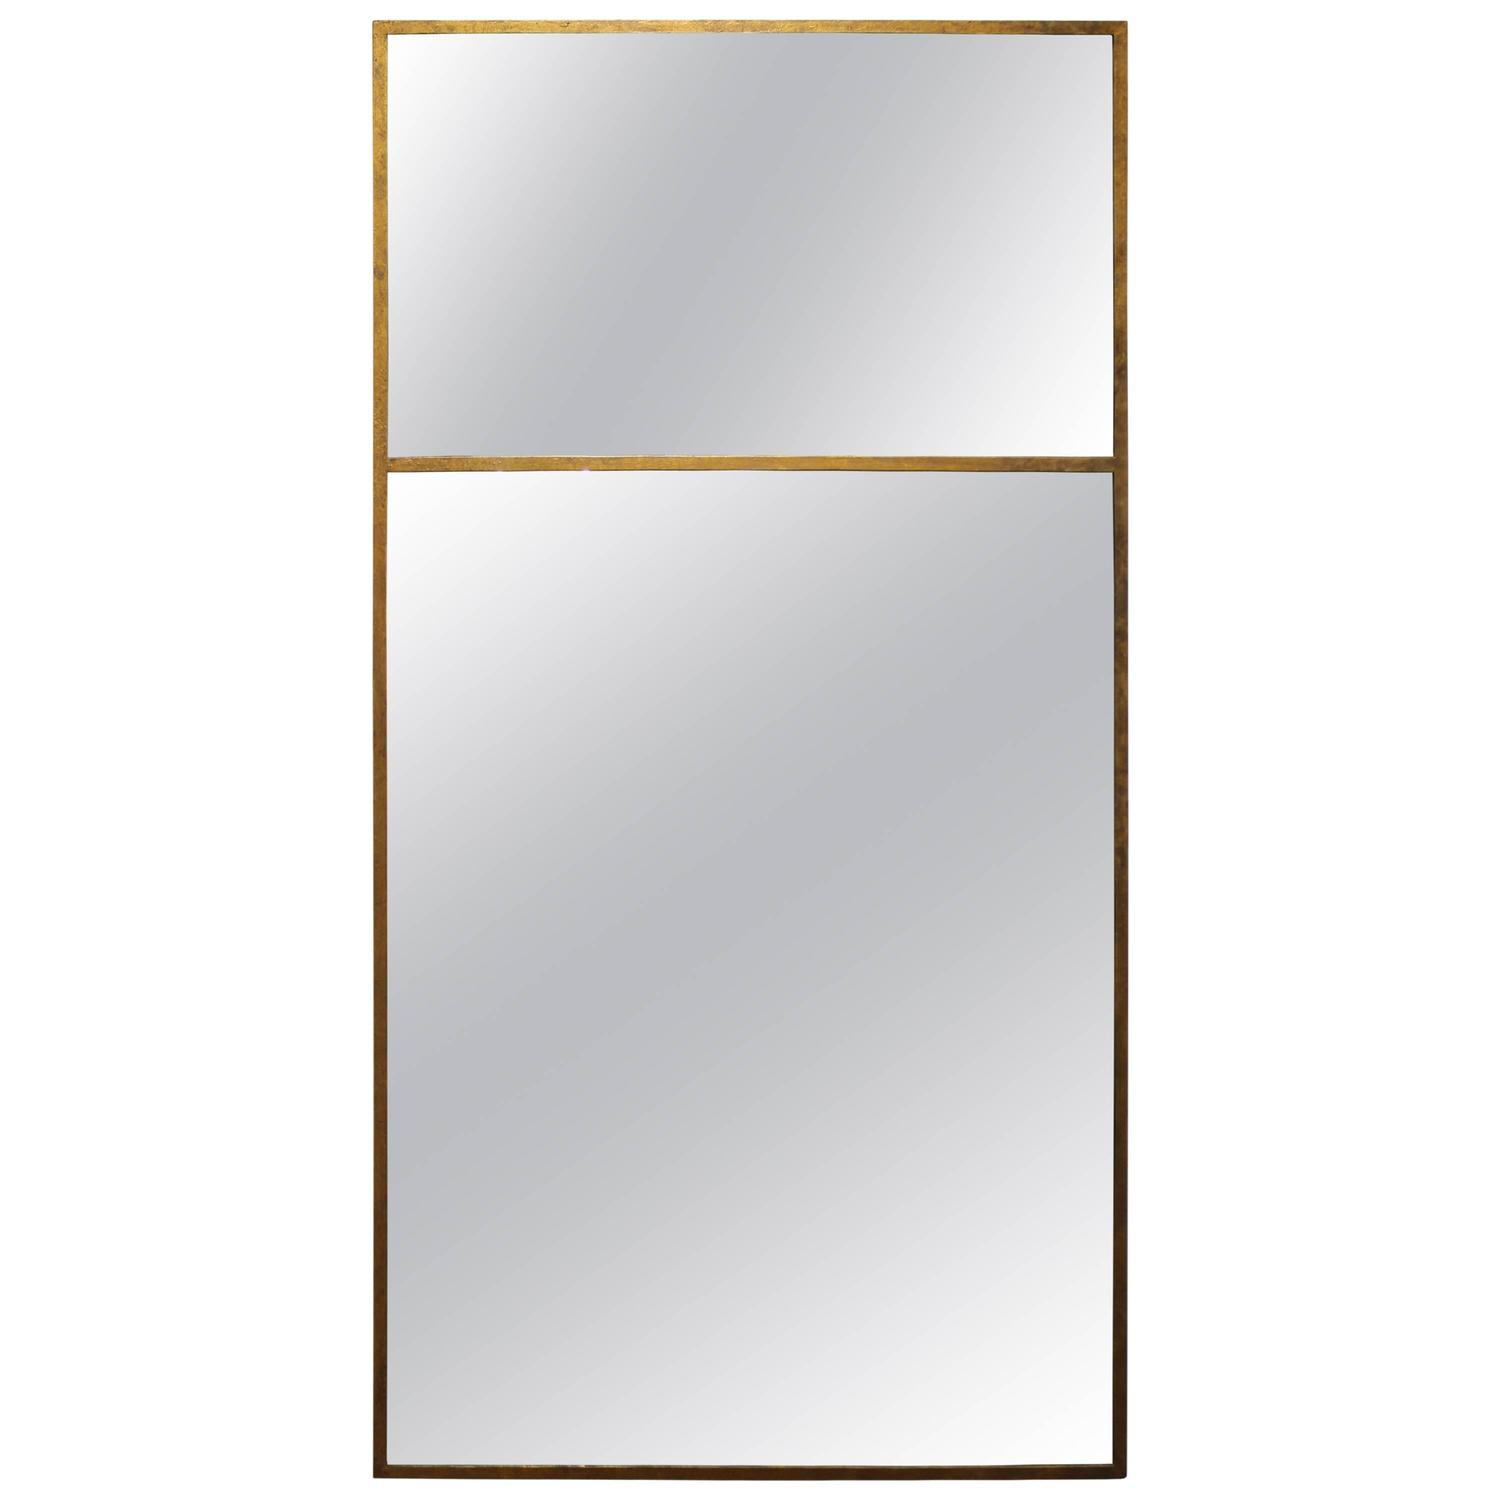 Long vertical gold wall mirror for sale at 1stdibs for Long wall mirror